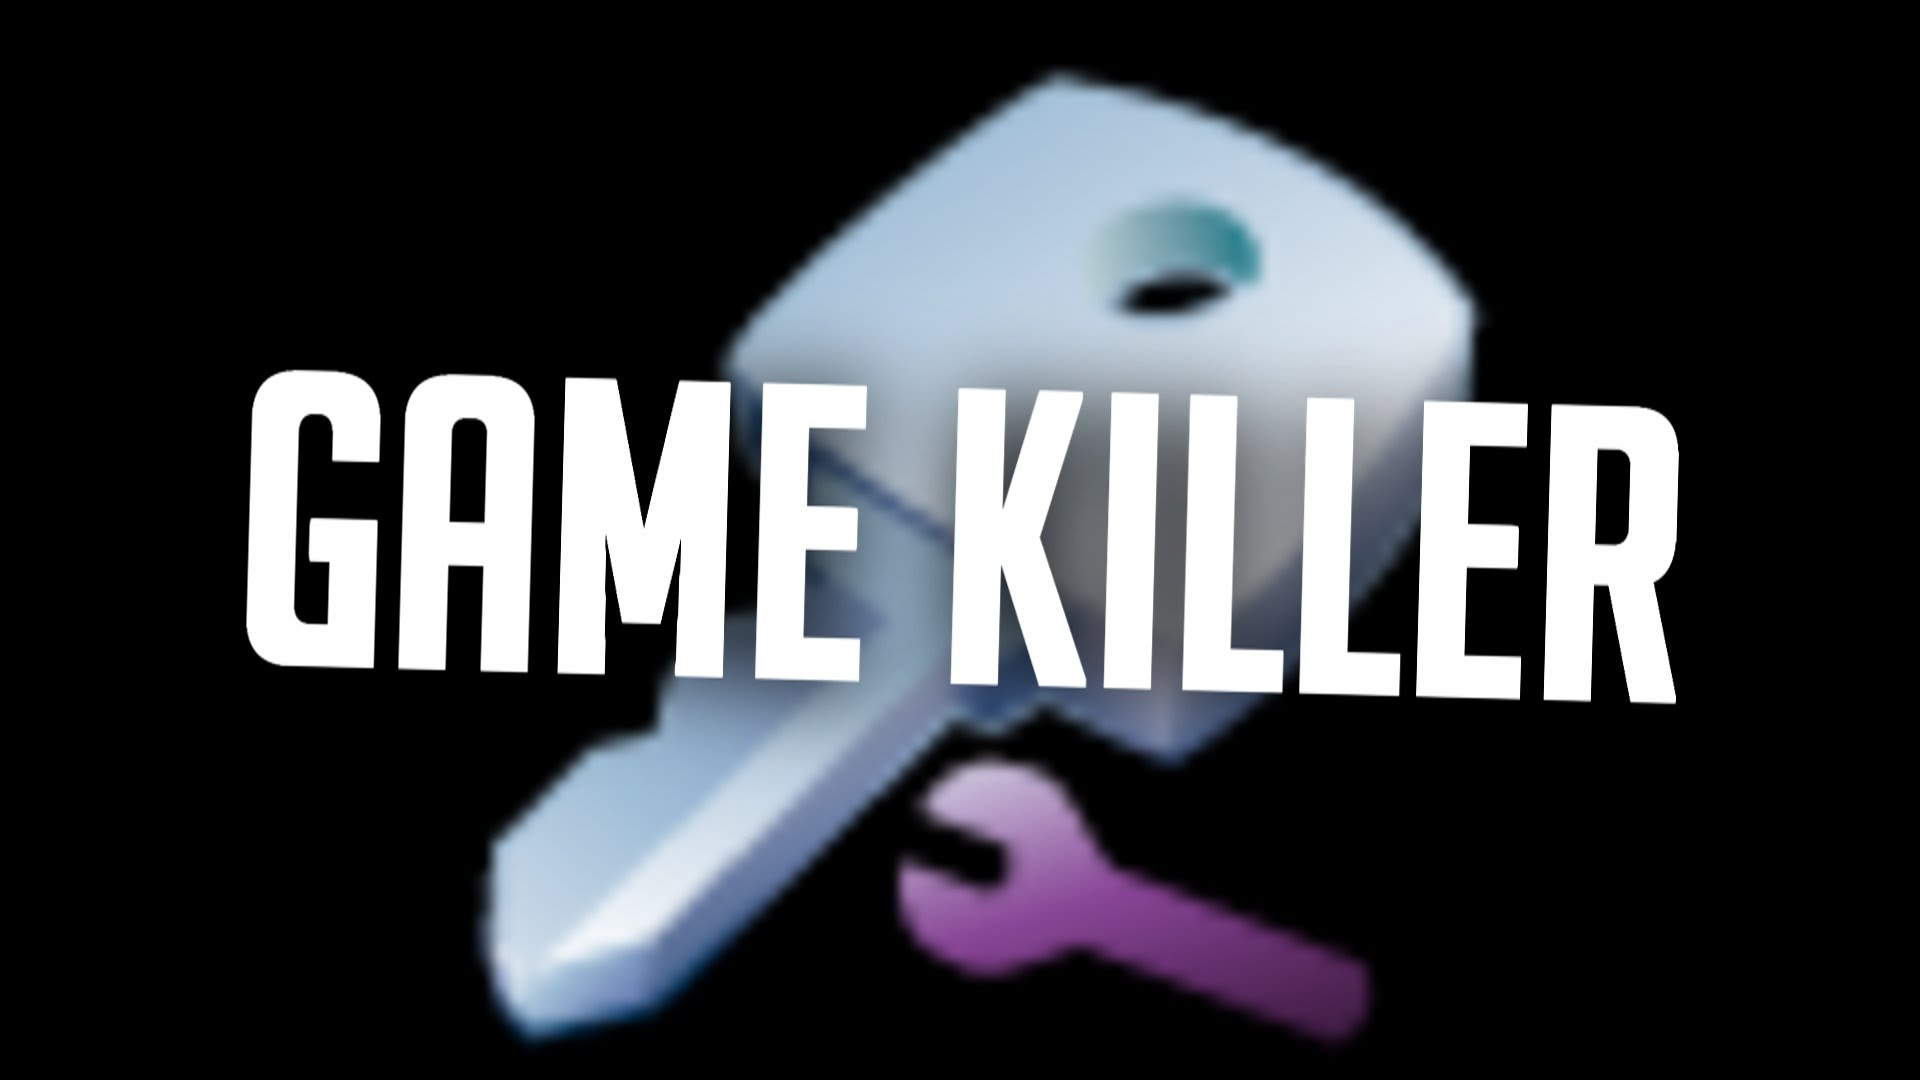 game killer apk unlimited gems coins hack android dr geeky as the name of the app suggests it s an app that runs on any android phone and with the help of it you can hack any game